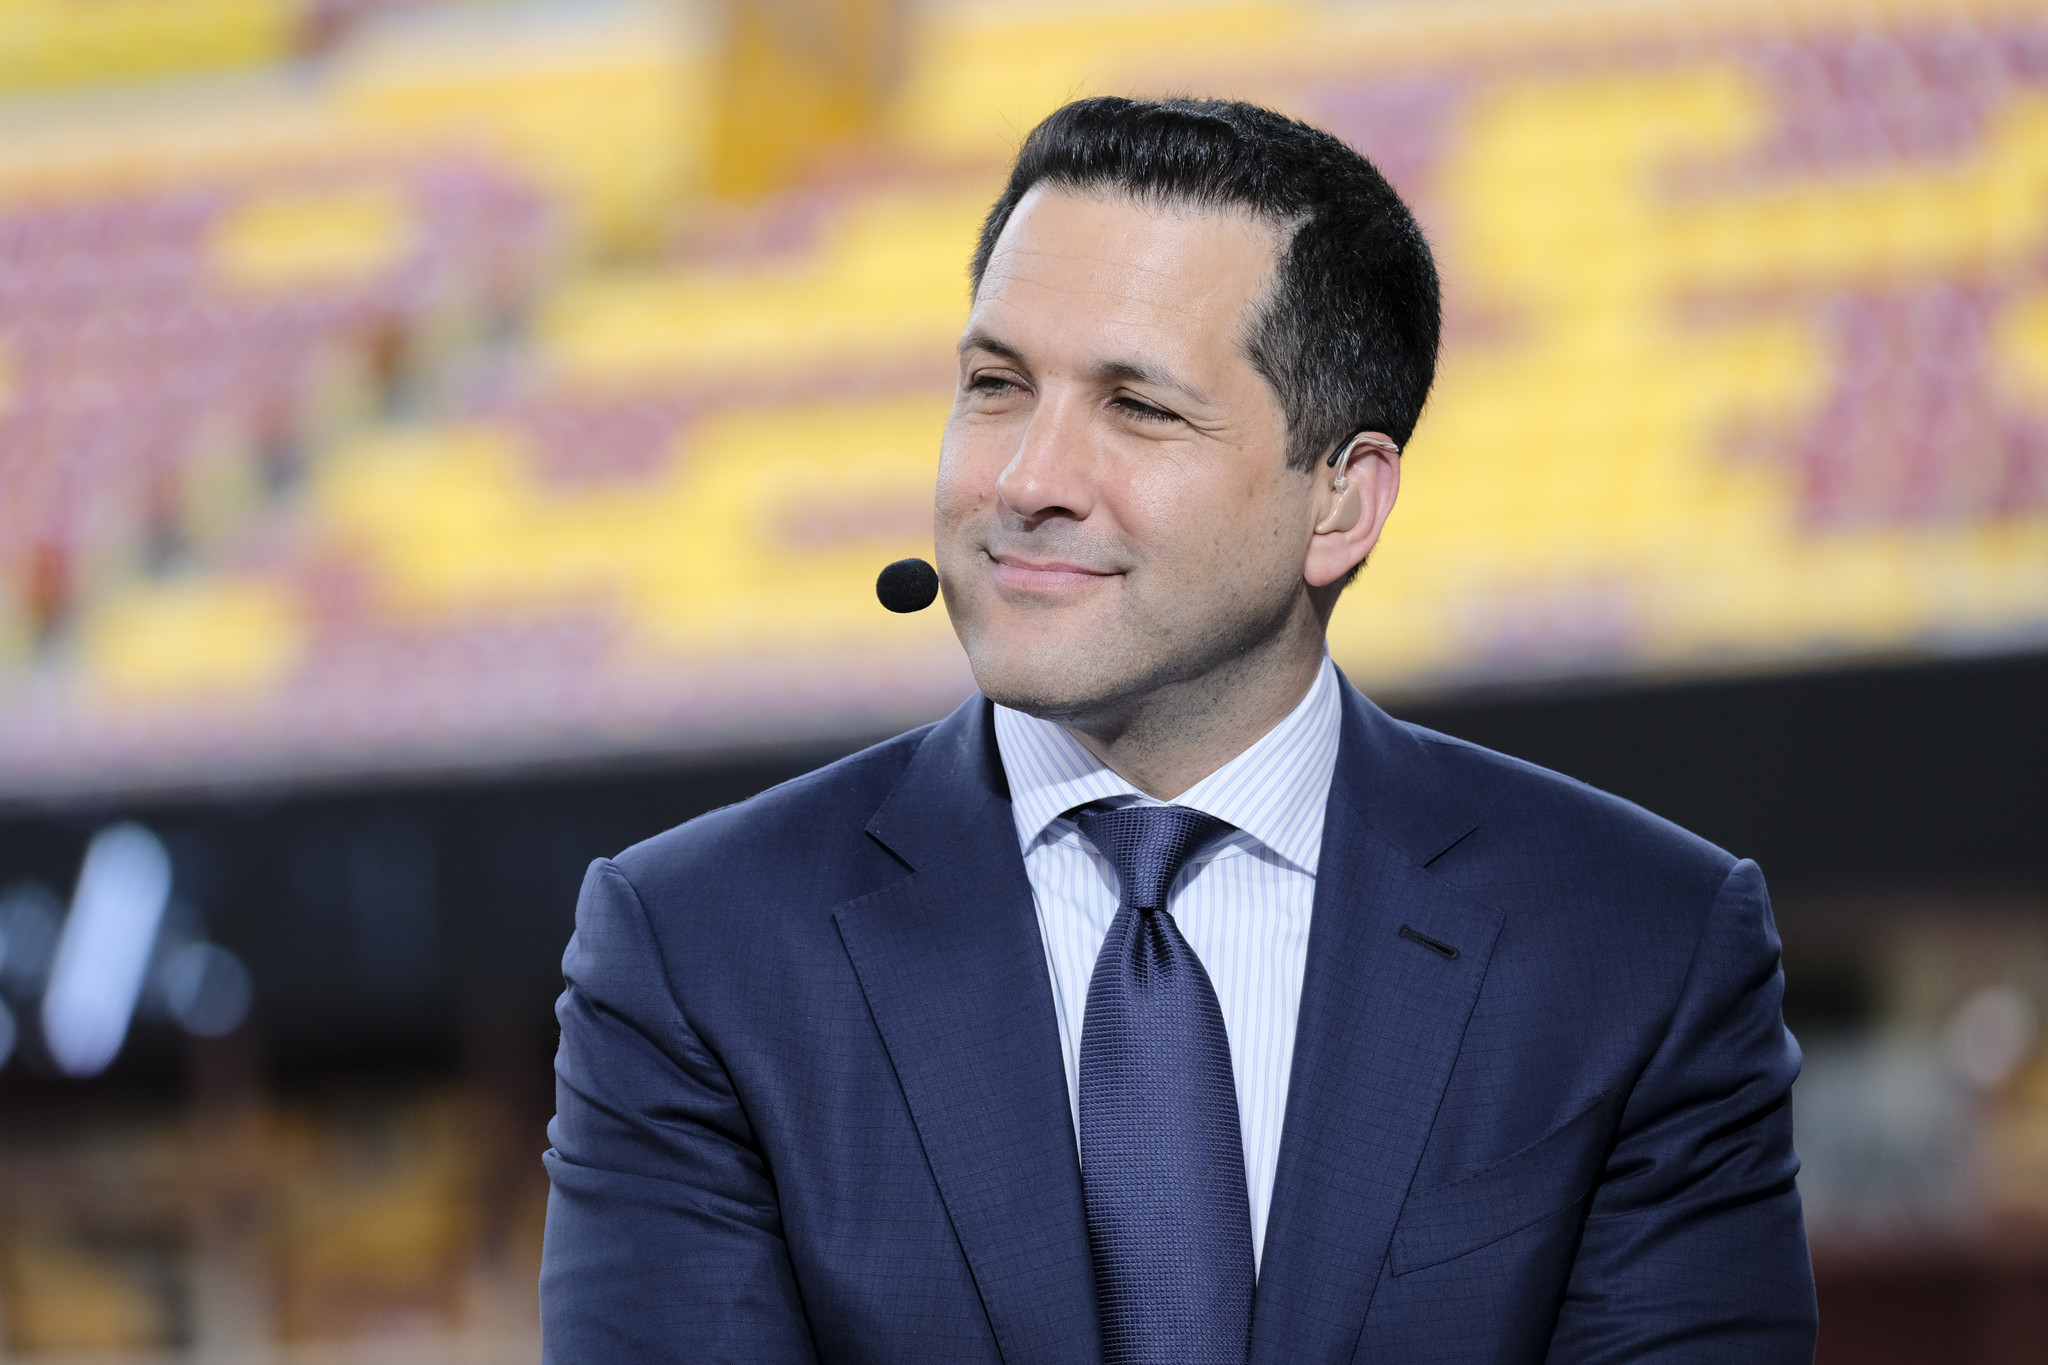 Adam Schefter rips NFL for holding draft during pandemic: 'There is carnage in the streets!'